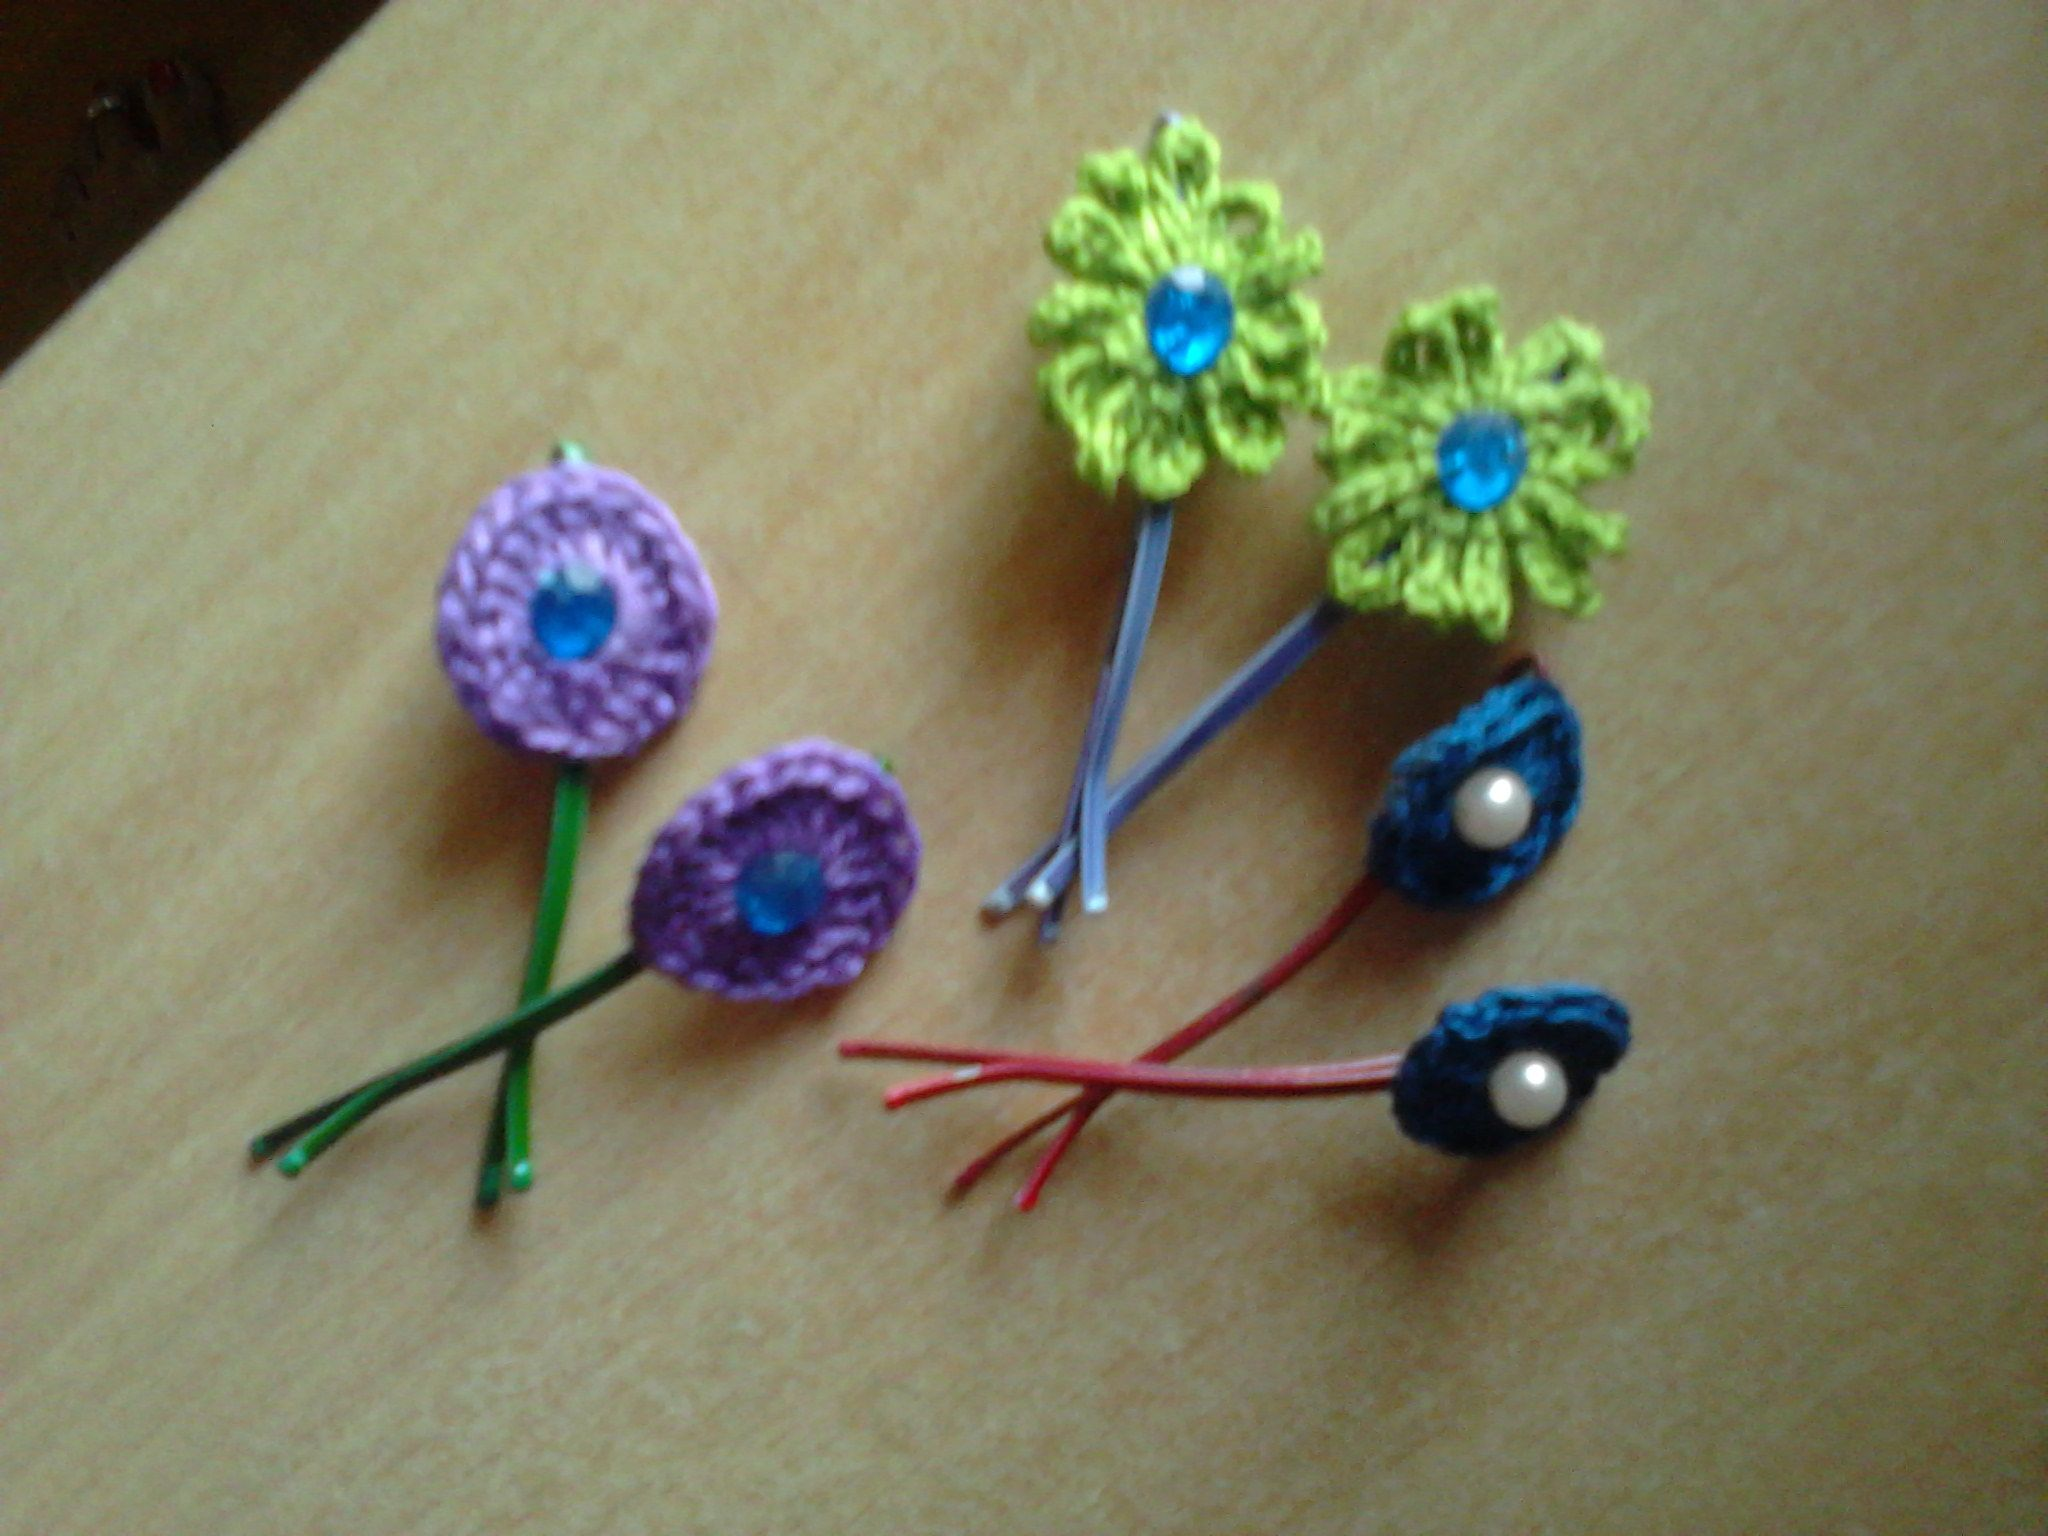 Crochet Hair Clip Ideas : Crochet hair clips..... crochet tutorials, patterns and ideas ...